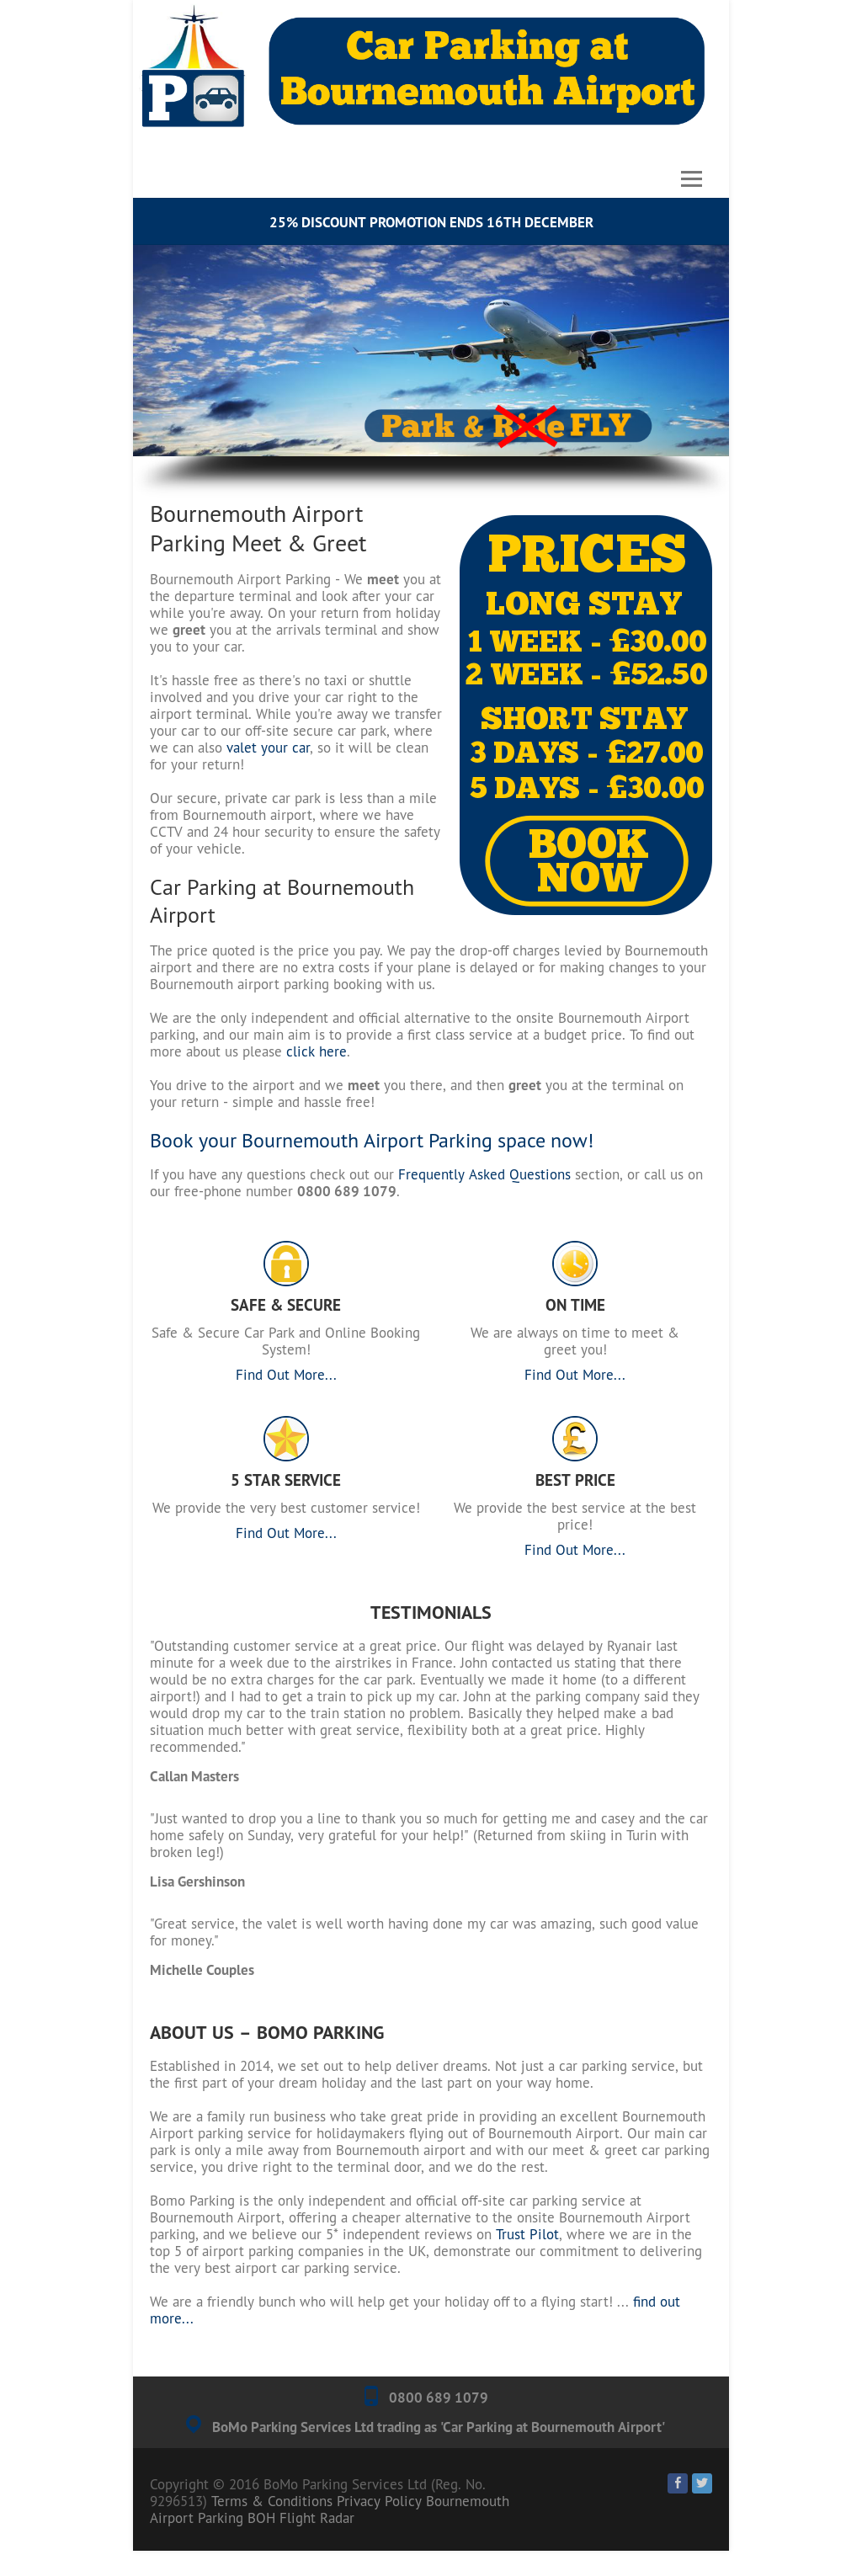 Car Parking At Bournemouth Airport Competitors, Revenue and